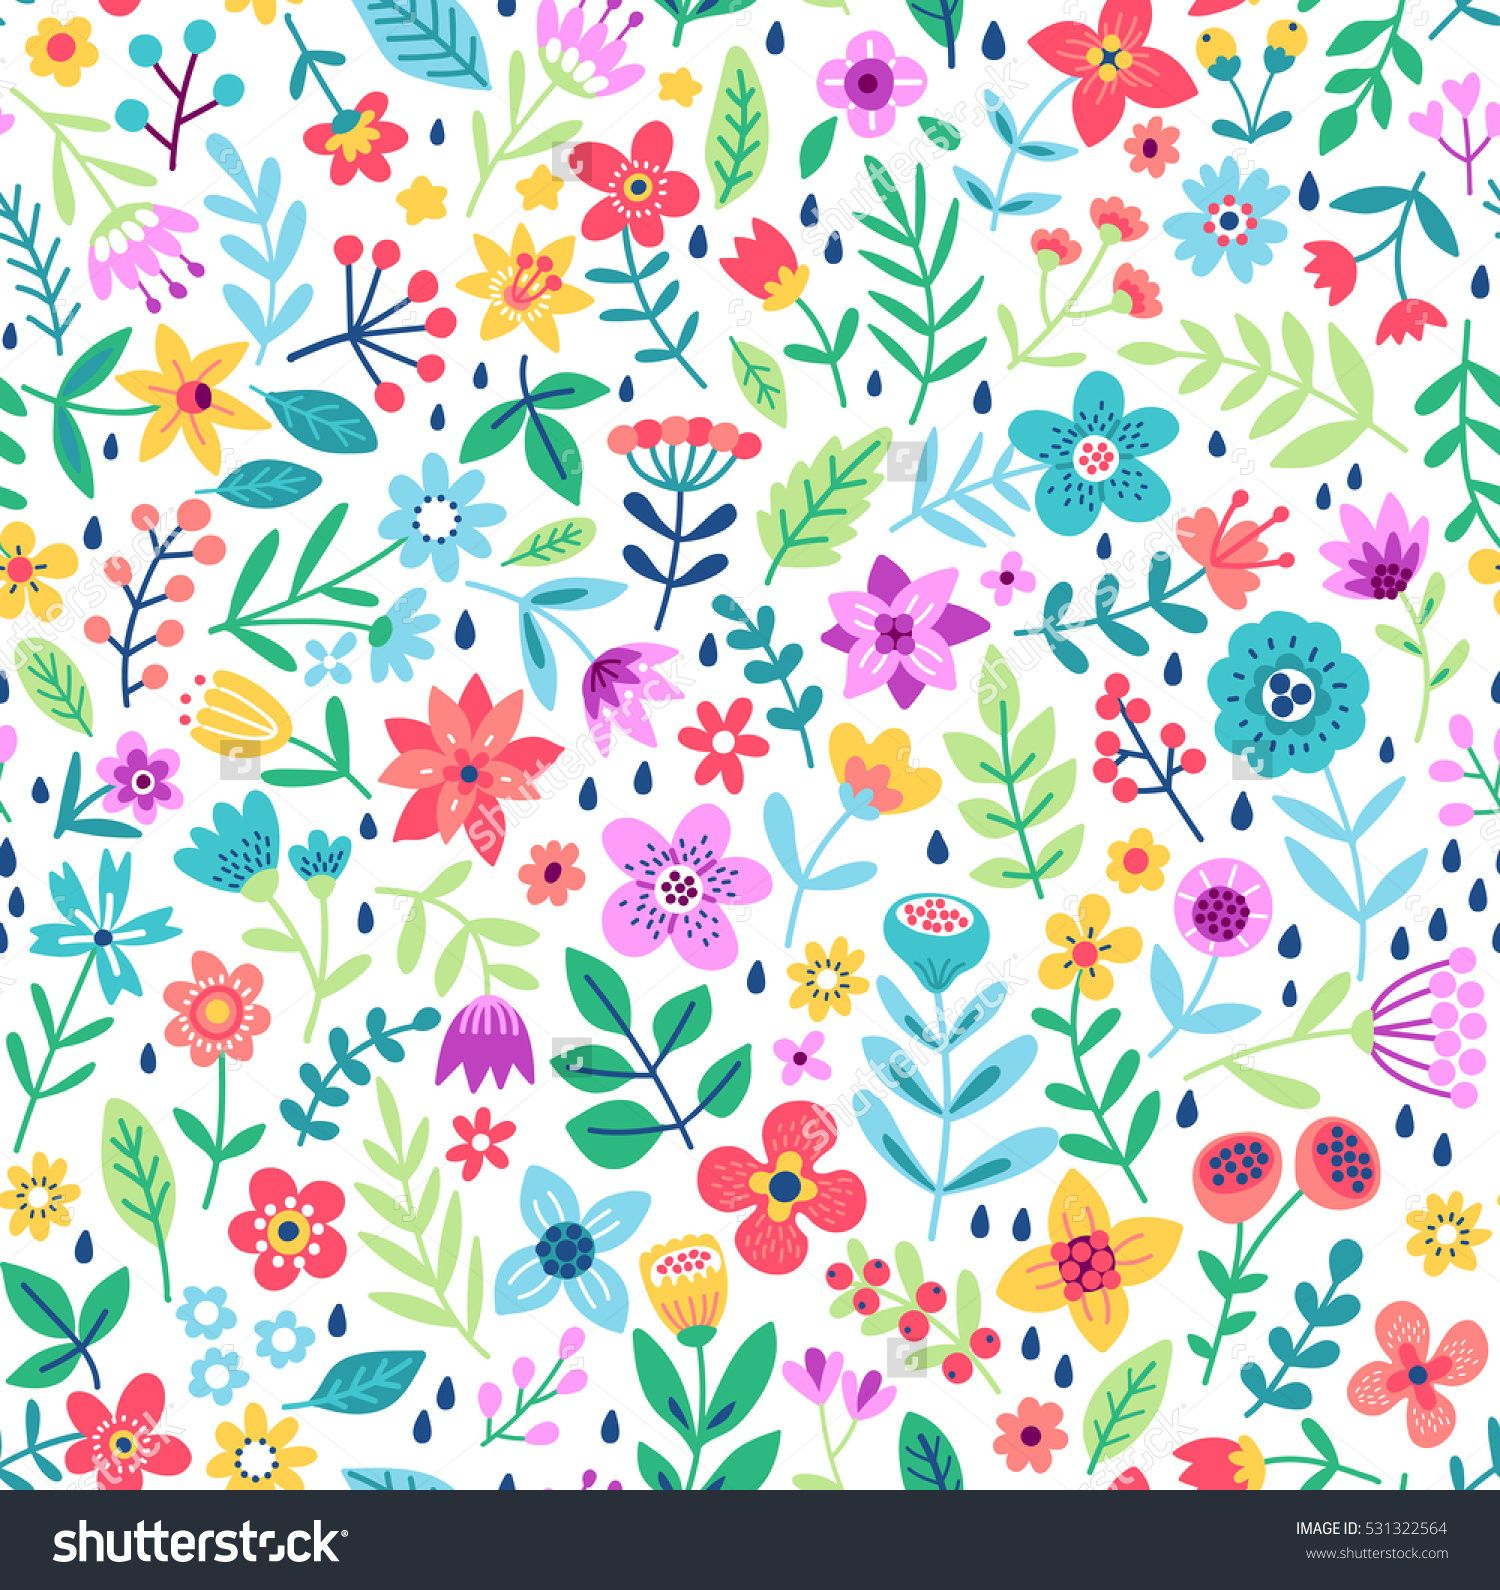 Yoga pattern background seamless pattern with five petals lotus flower - Cute Floral Pattern In The Small Flower Ditsy Print Motifs Scattered Random